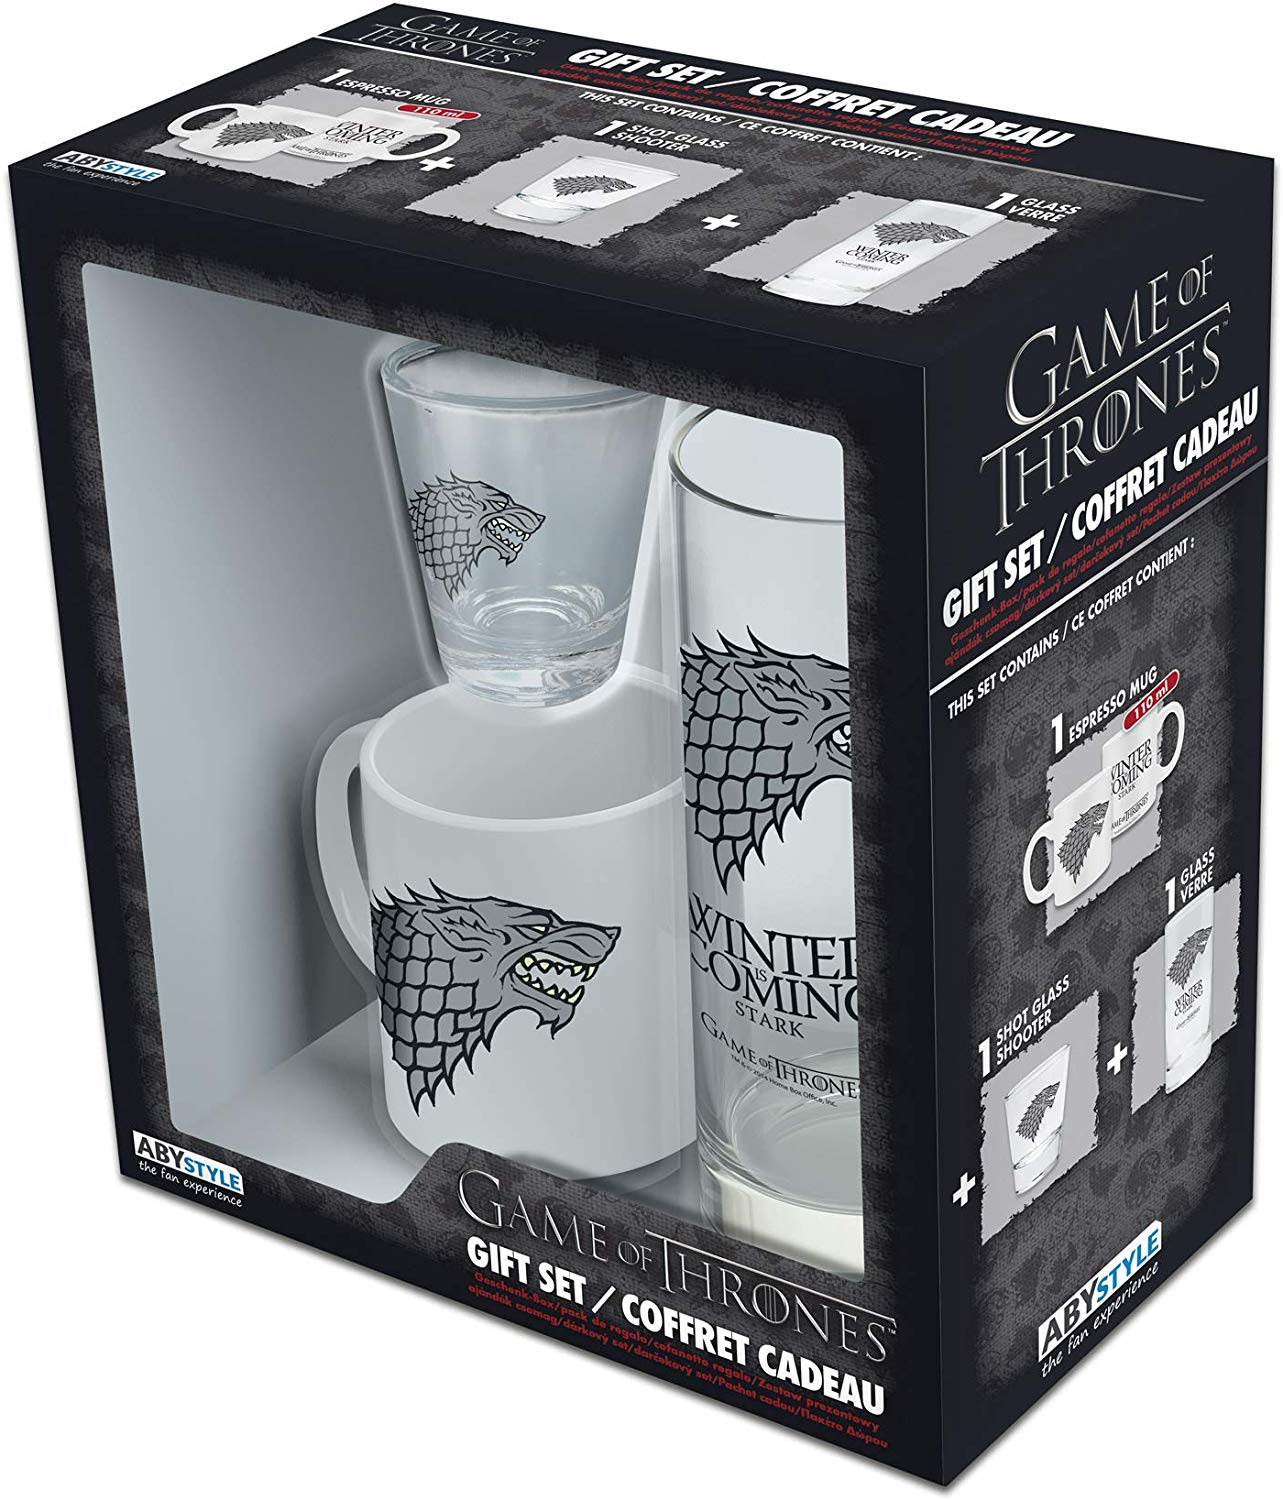 Game of Thrones (Starks of Winterfell) set